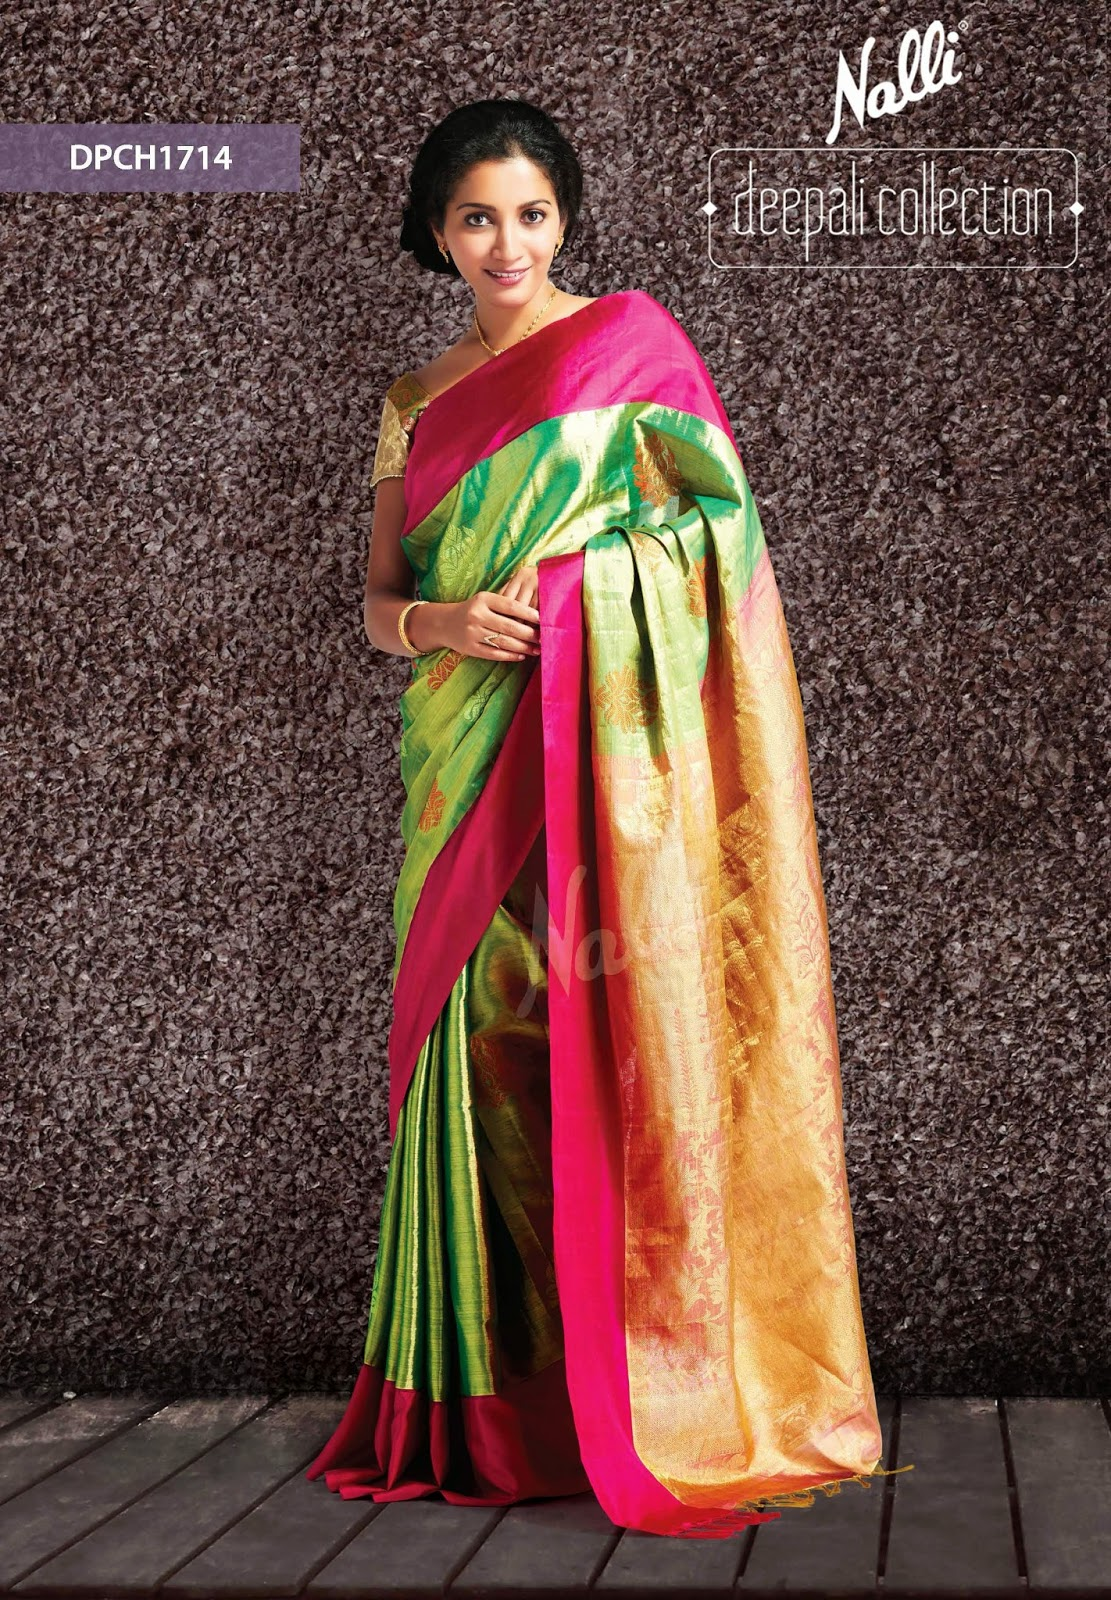 Nalli Deepali Collection